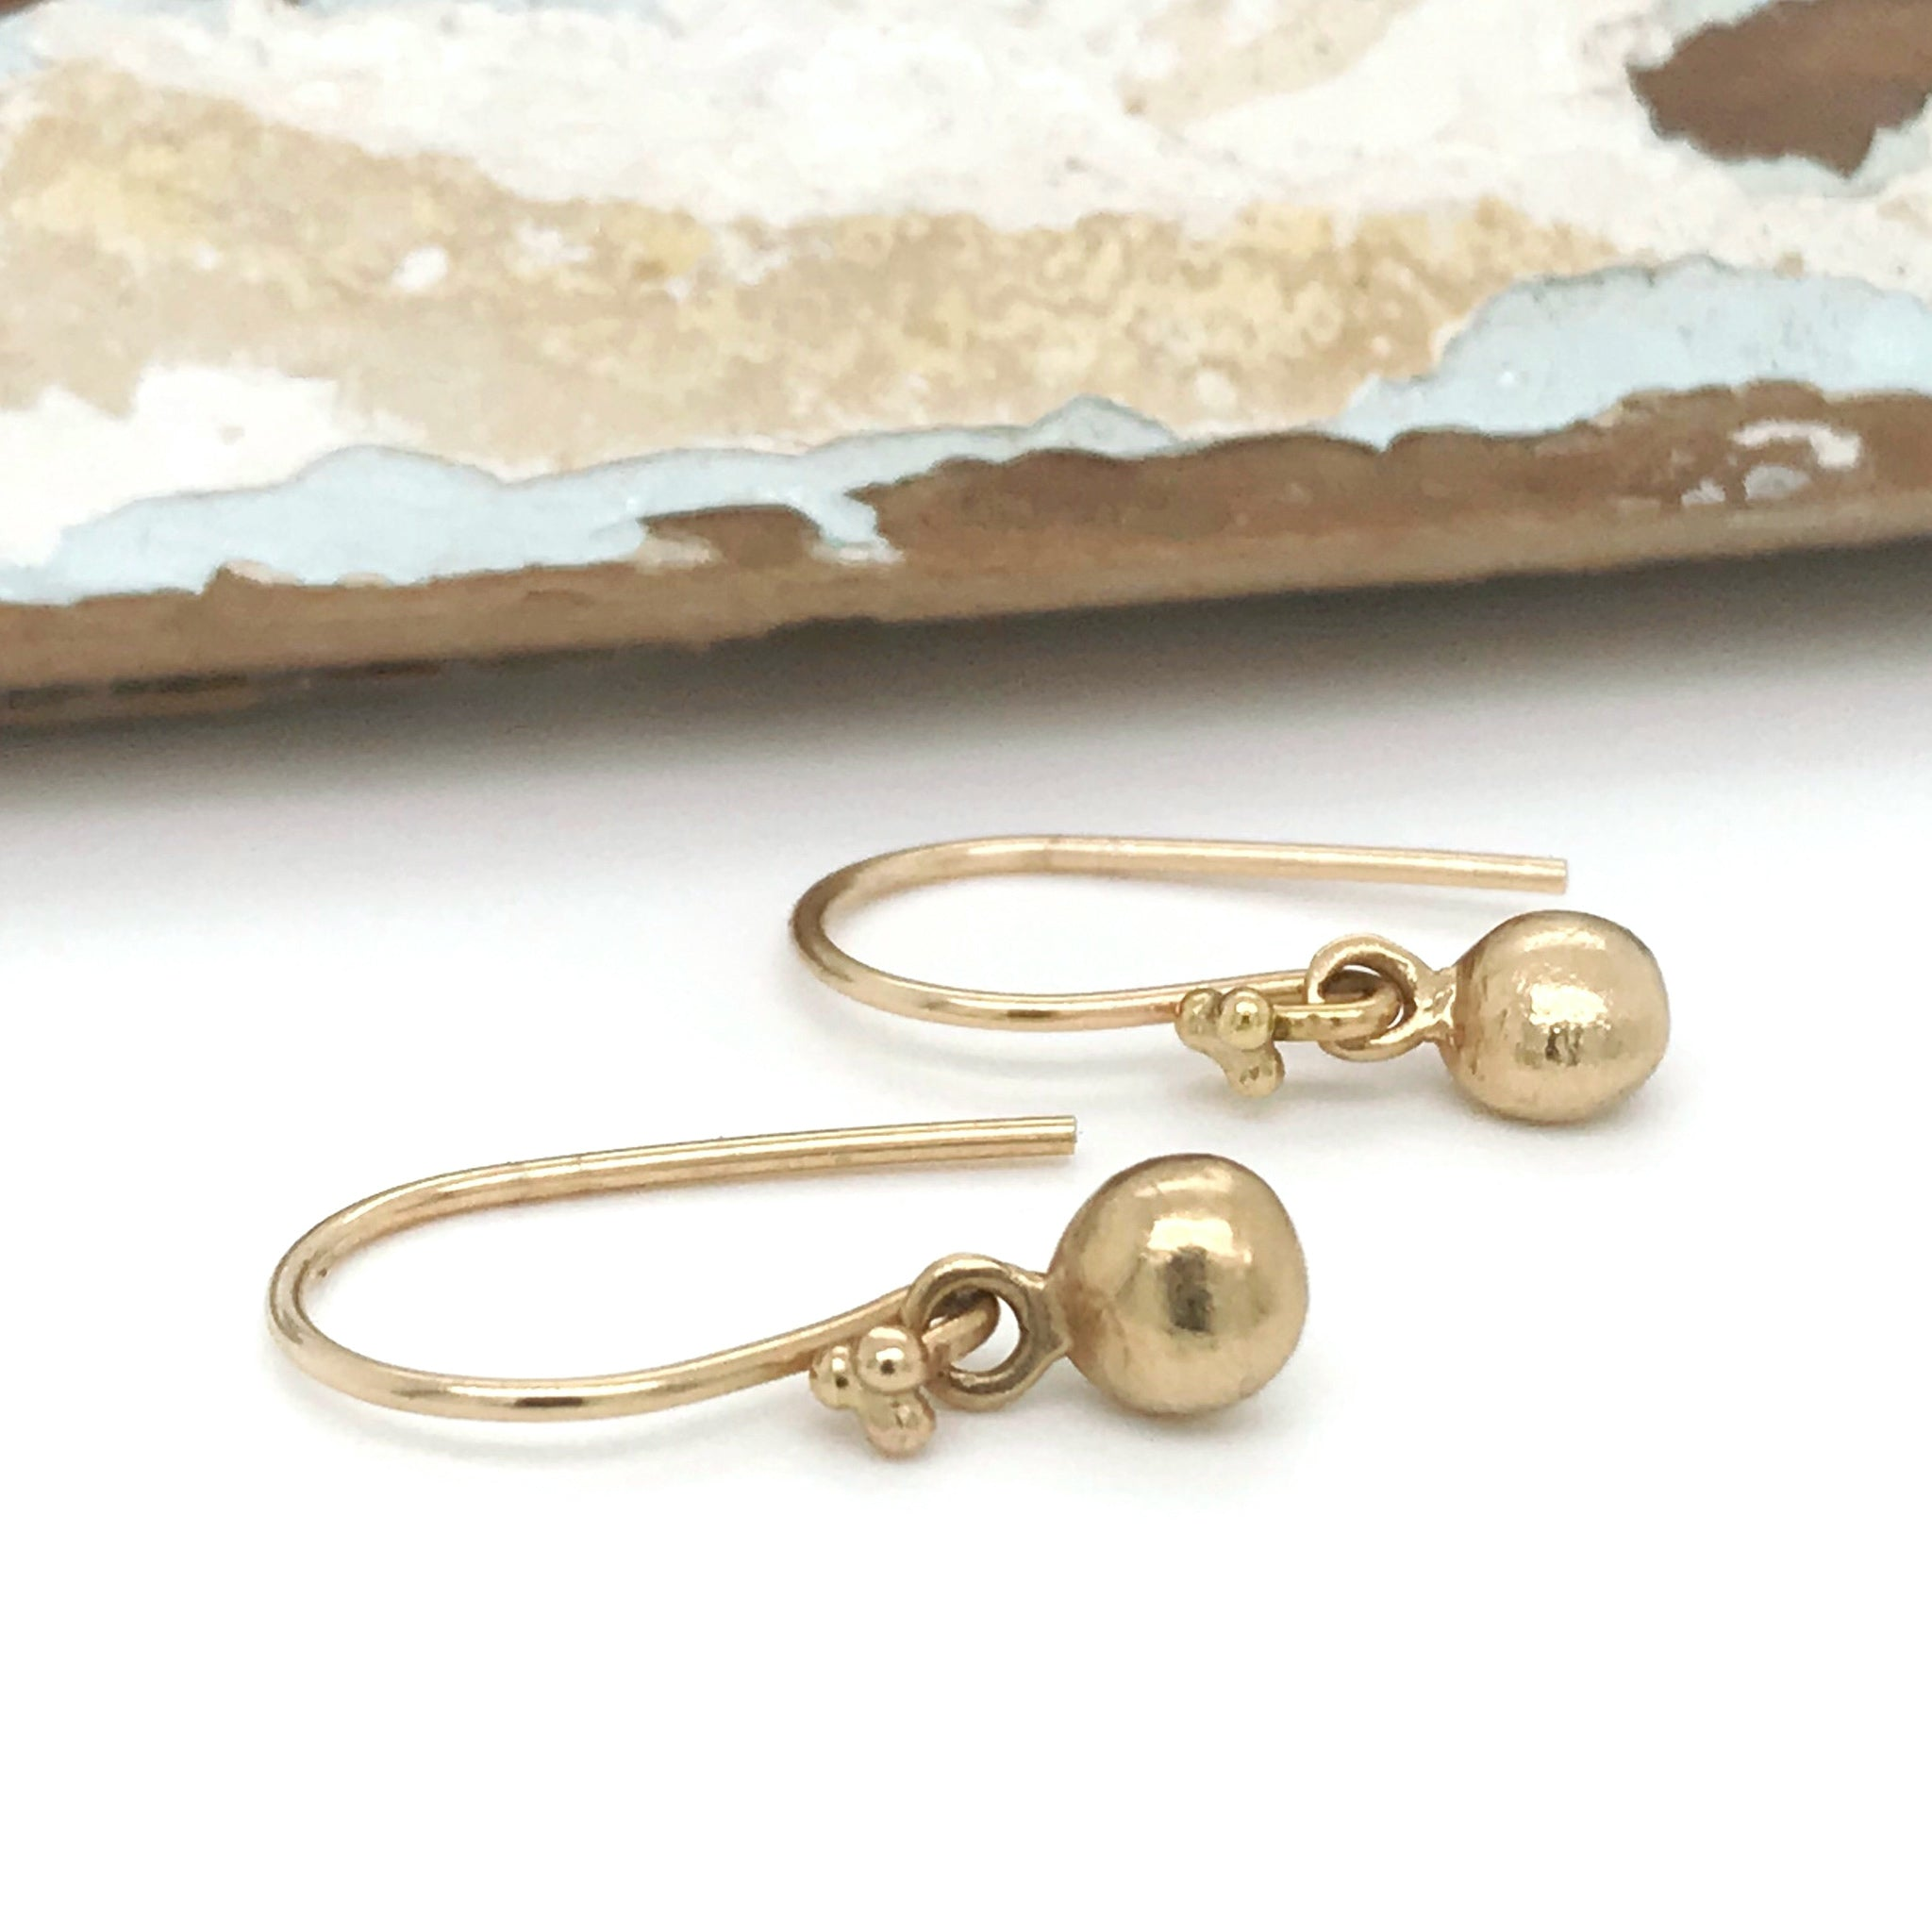 gold earrings pebble charms kriket broadhurst jewellery